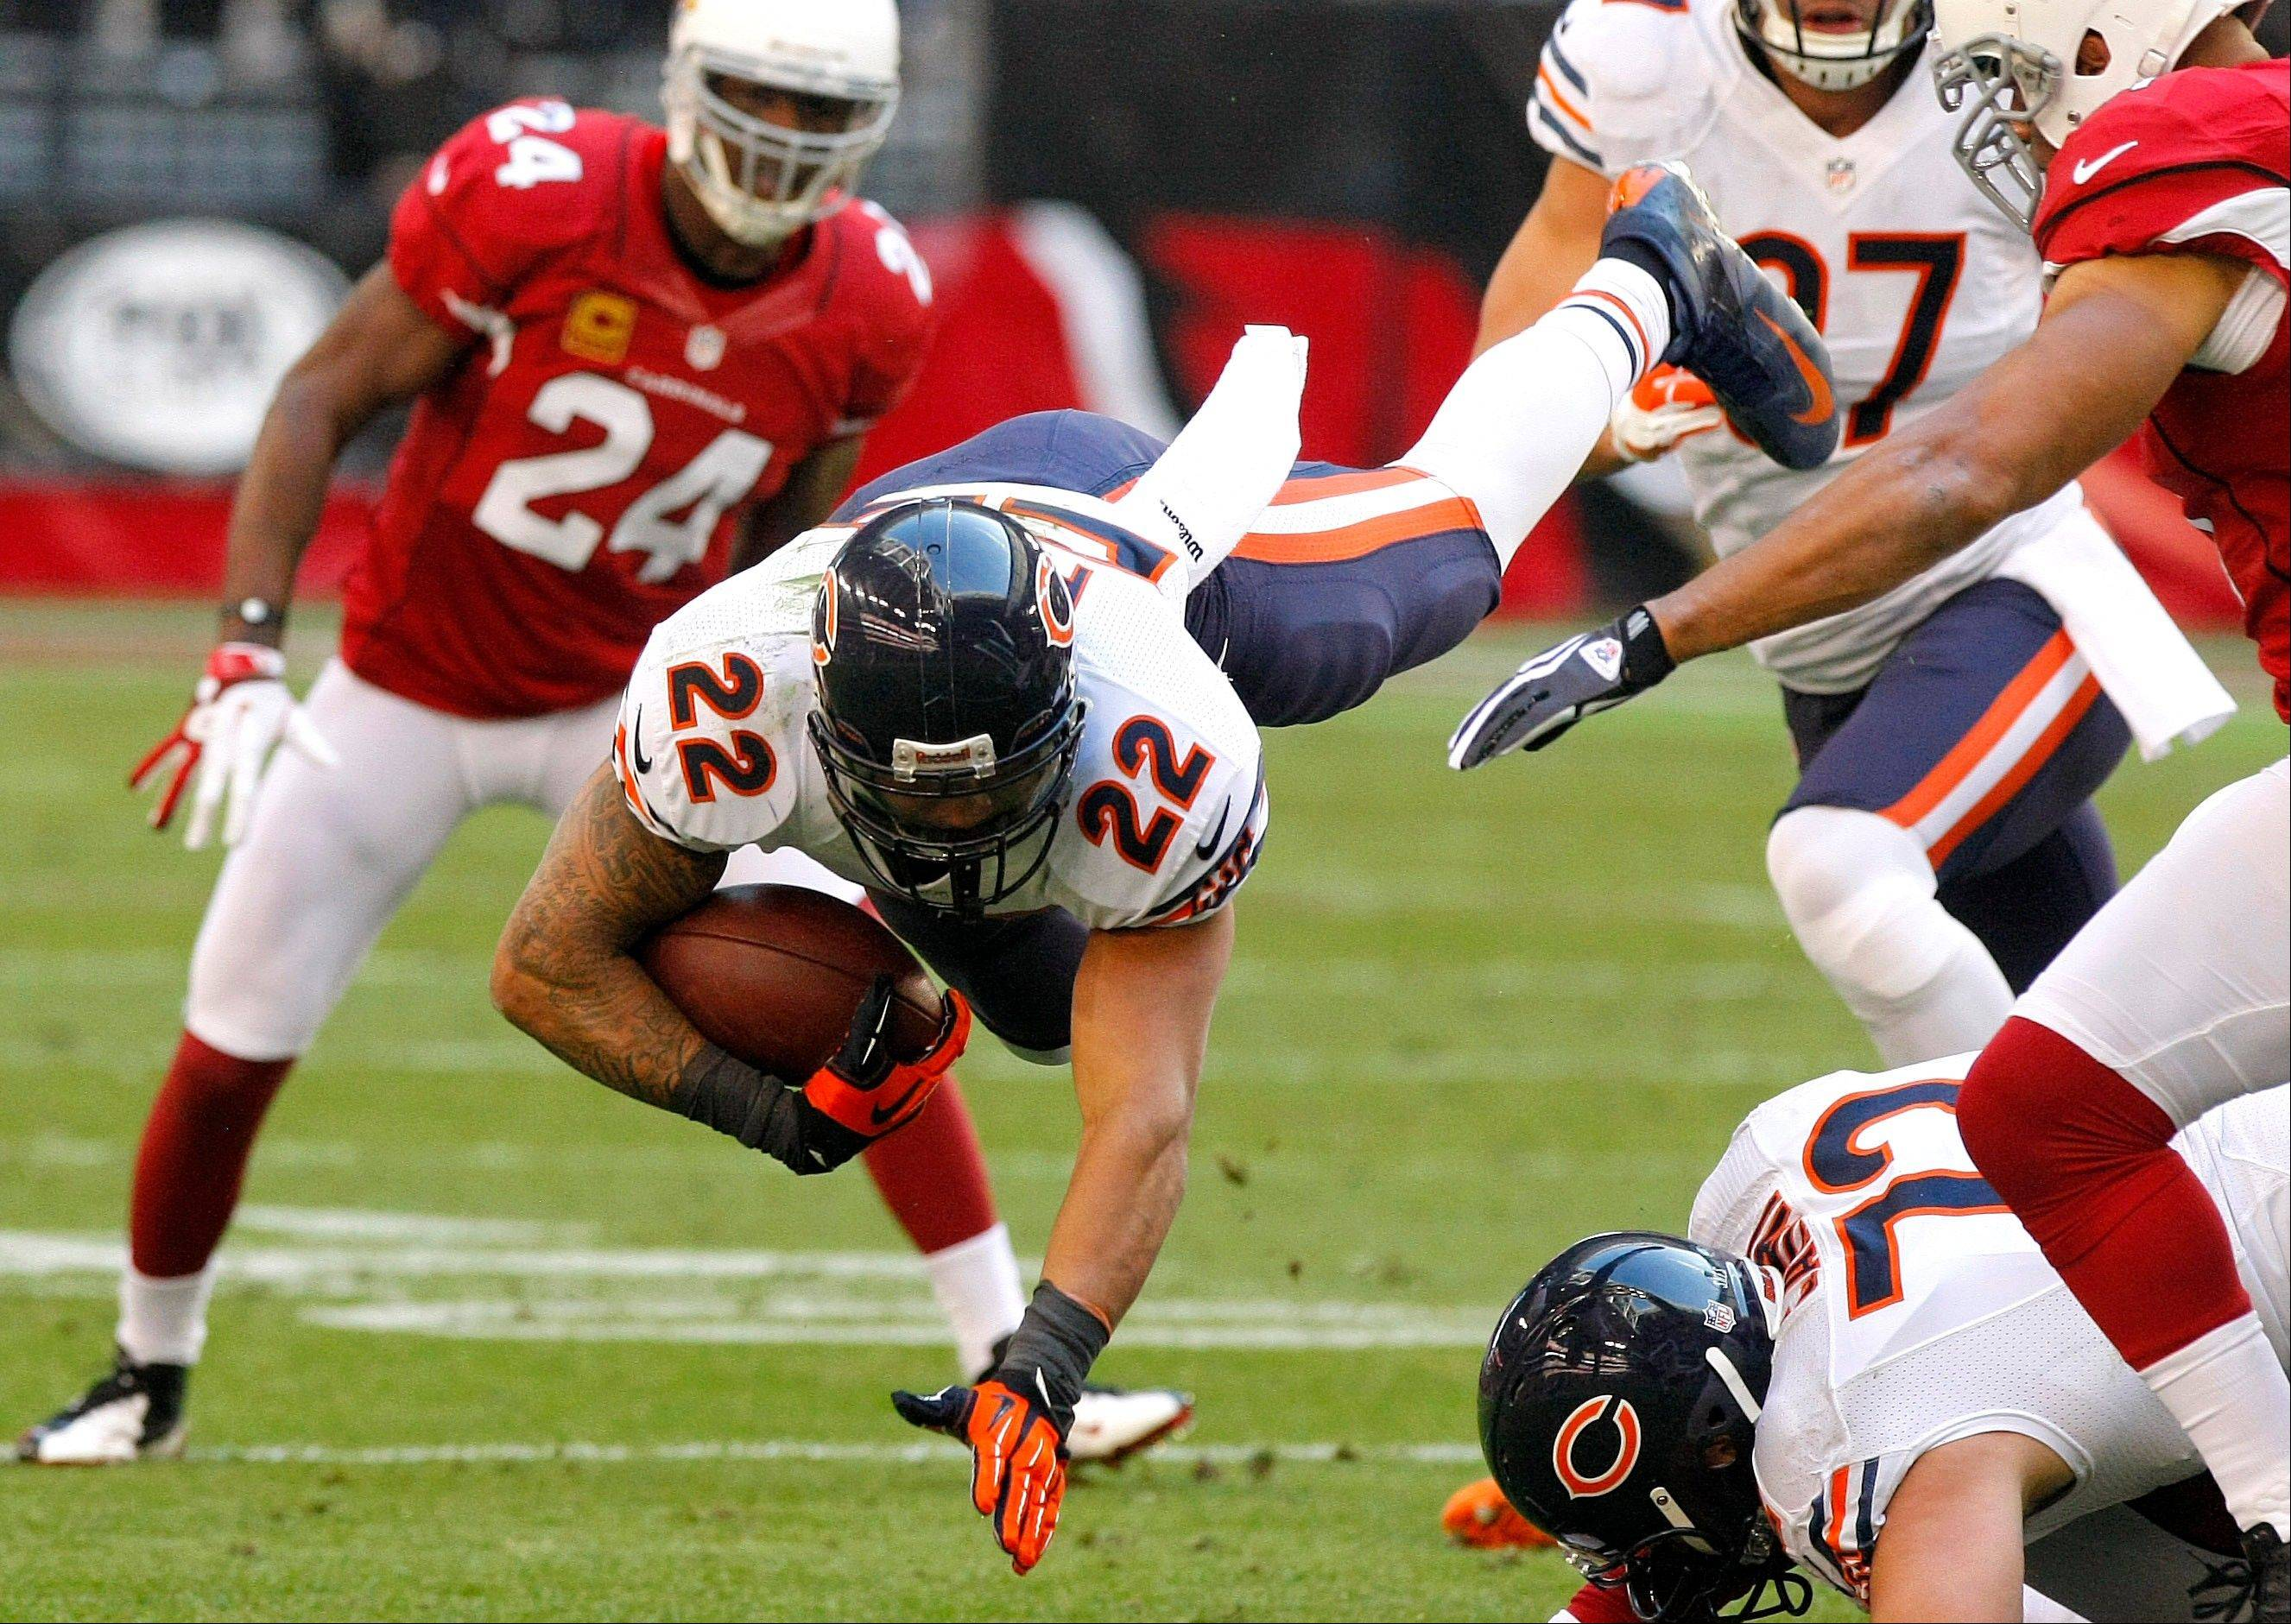 Chicago Bears running back Matt Forte is tripped up against the Arizona Cardinals during the first half.